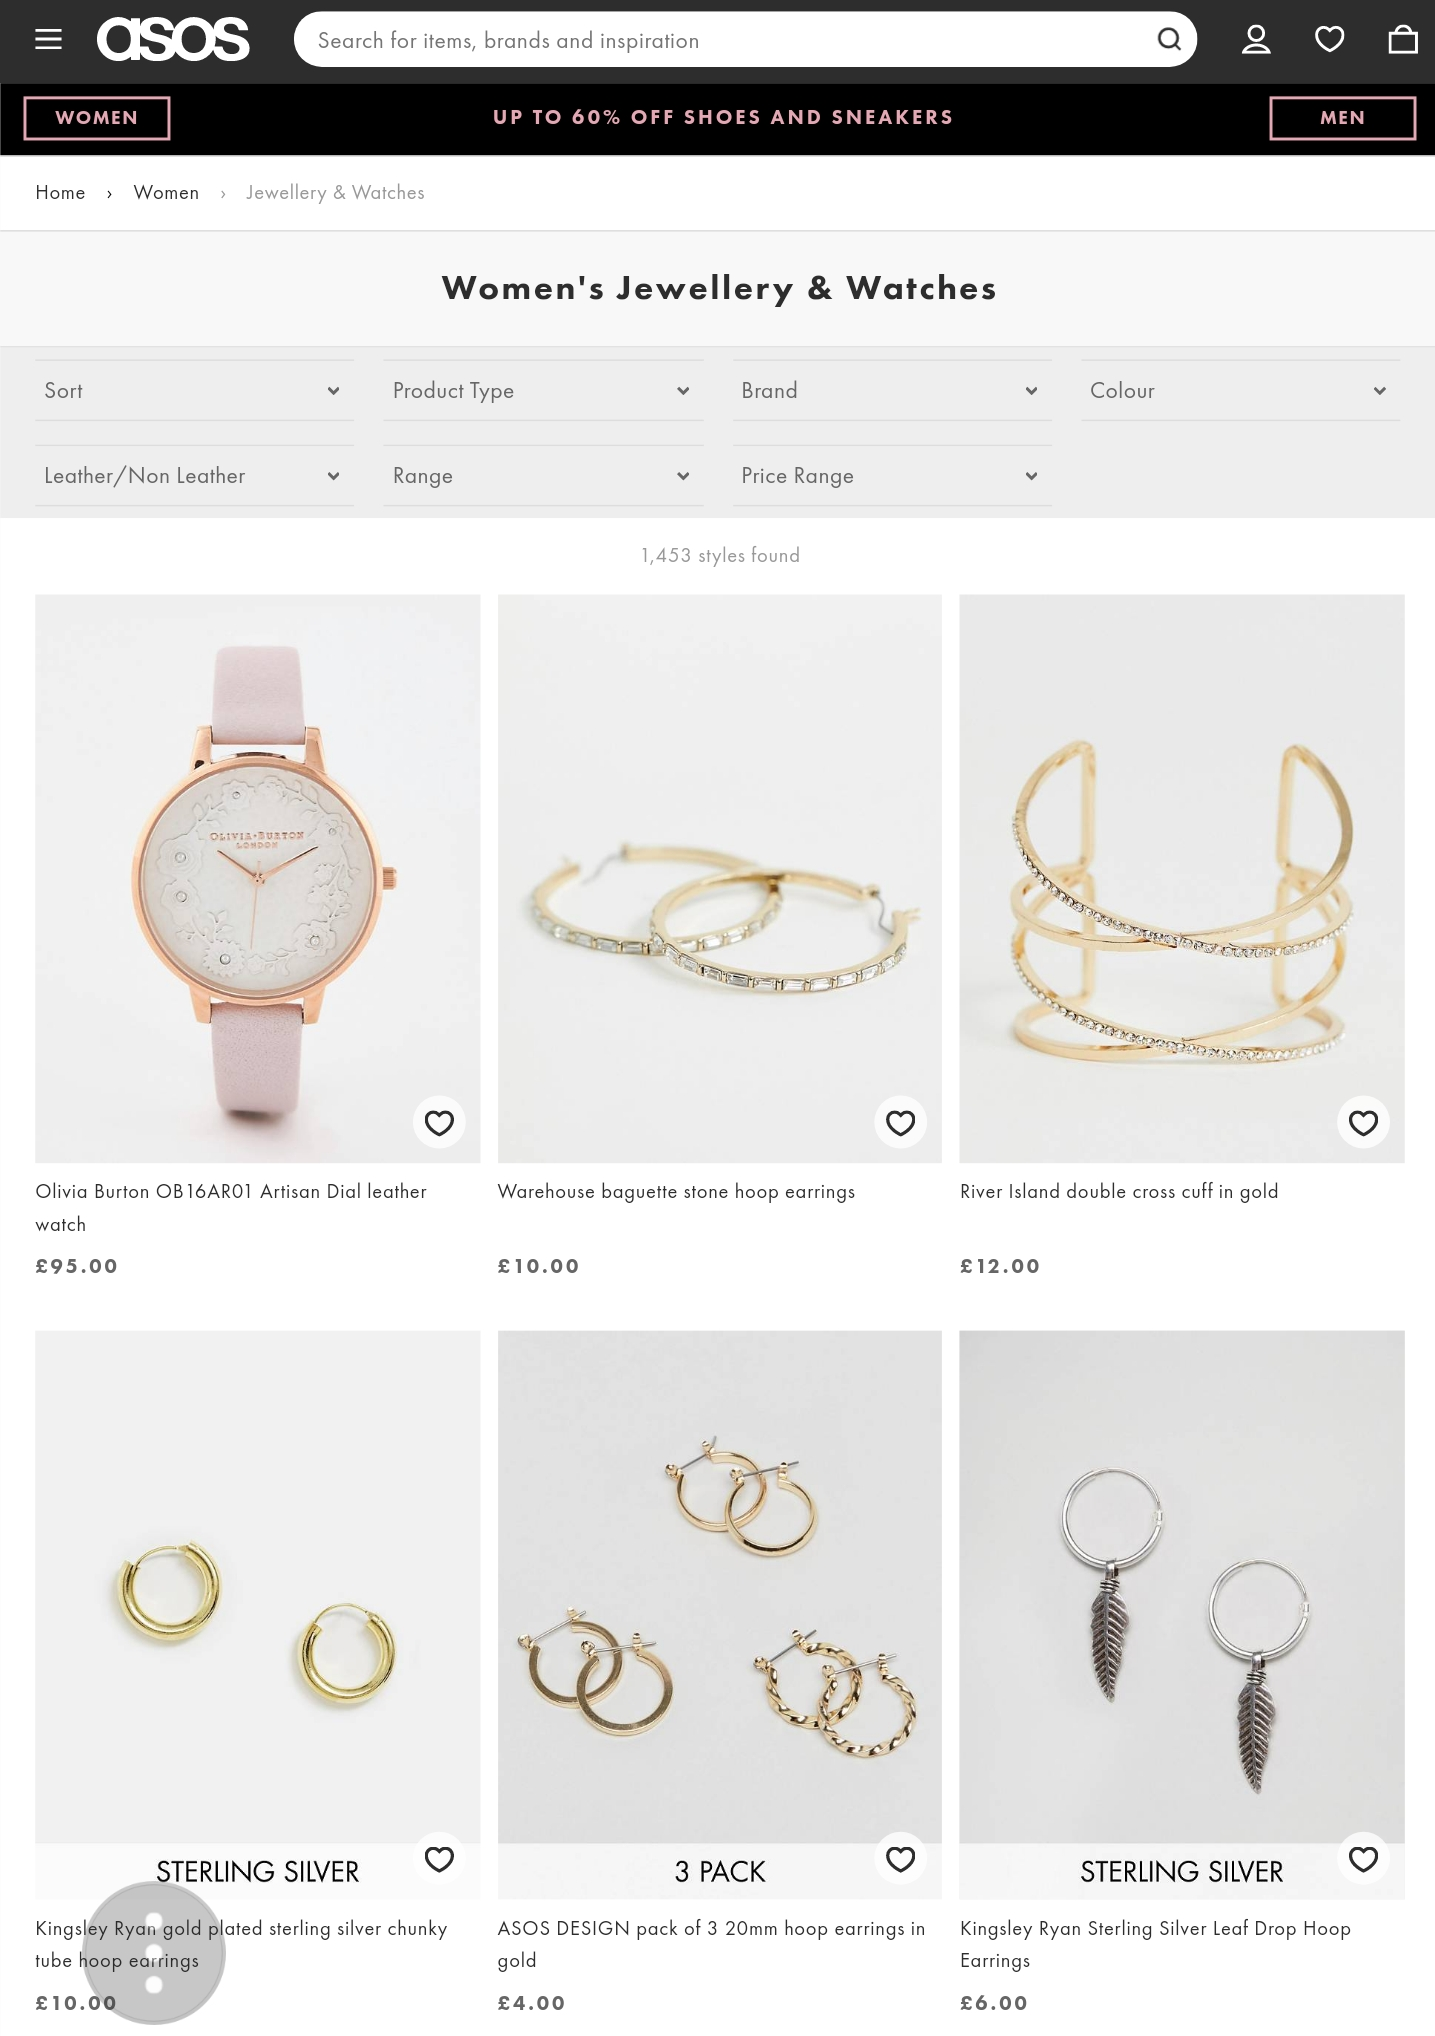 Top place to buy cheap jewelry and affordable jewellery from. Low-priced jewellery for the simple jewelry lovers and bold jewelry. Budget-friendly jewellery for all. Your affordable jewelry gift guide. Gift guide for her. Stocking stuffers for her